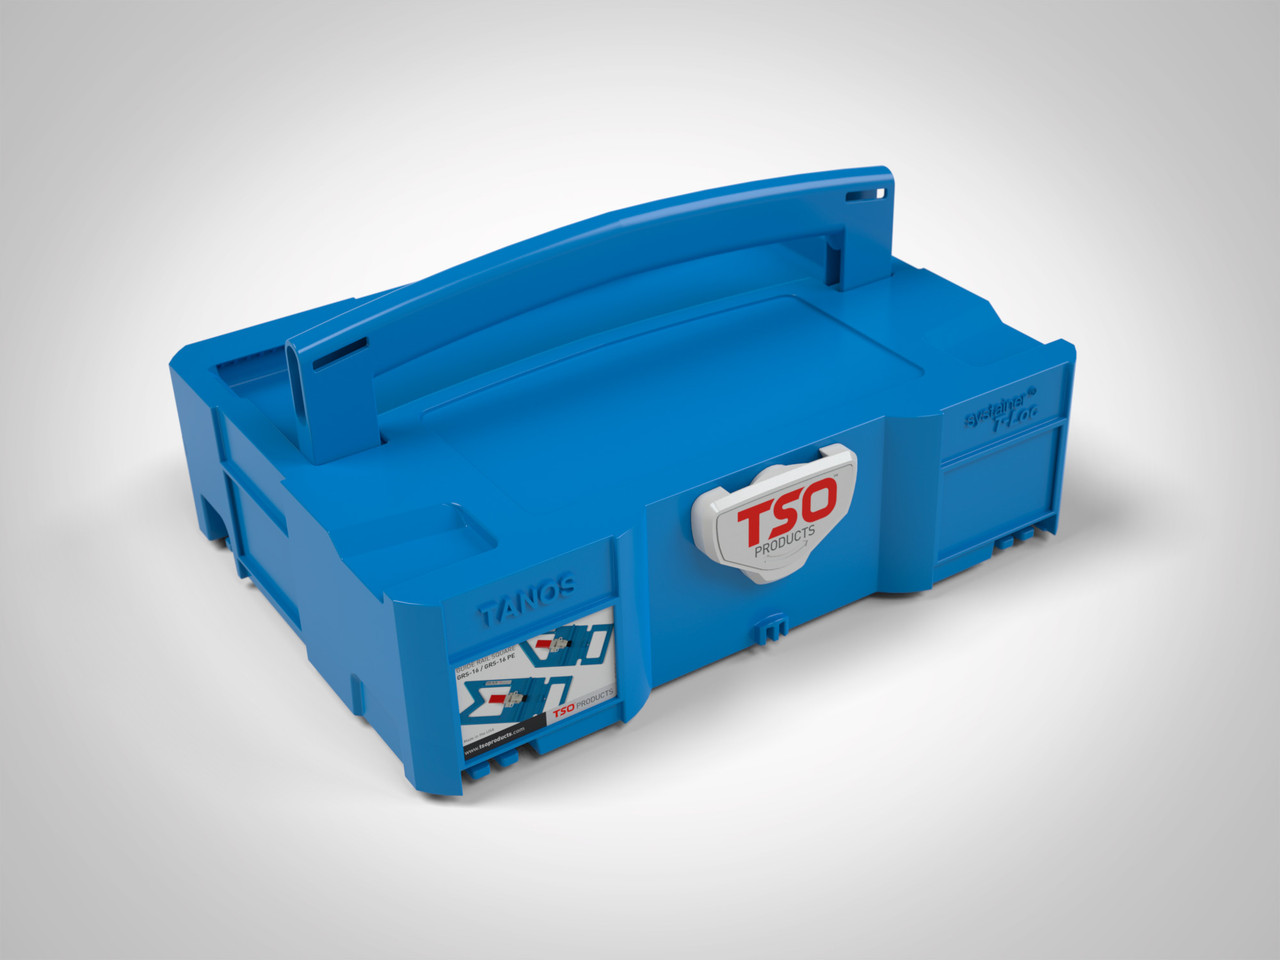 TSO Products branded Systainer  includes a durable plastic full color identification card.